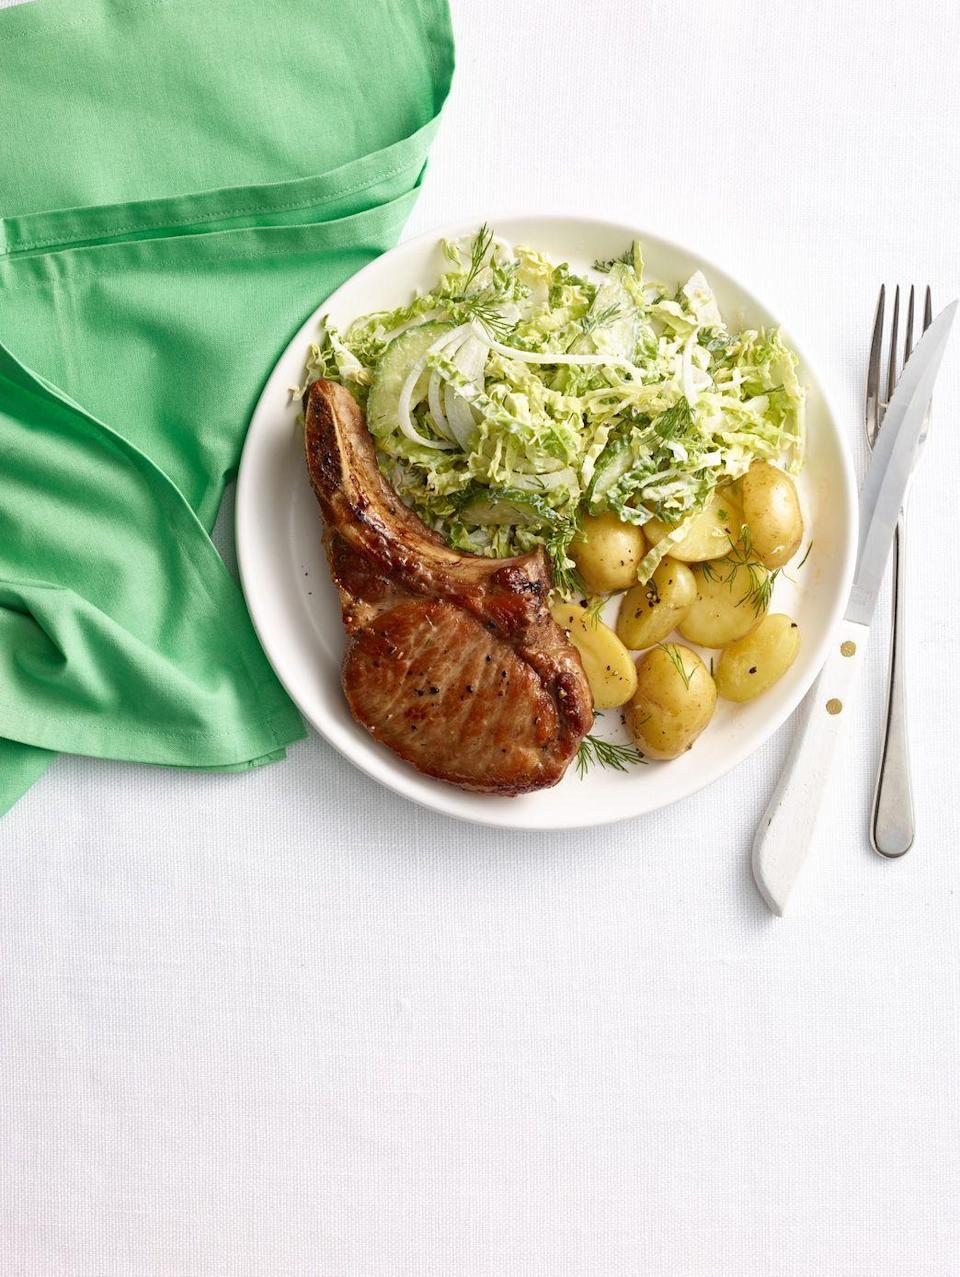 """<p>Tender pork, crunchy cabbage, and creamy potatoes — talk about a fully balanced weekday dinner.</p><p><em><a href=""""https://www.goodhousekeeping.com/food-recipes/a14880/pork-chops-horseradish-cabbage-cucumber-slaw-recipe-wdy0315/"""" rel=""""nofollow noopener"""" target=""""_blank"""" data-ylk=""""slk:Get the recipe for Pork Chops with Horseradish Cabbage and Cucumber Slaw »"""" class=""""link rapid-noclick-resp"""">Get the recipe for Pork Chops with Horseradish Cabbage and Cucumber Slaw »</a></em></p>"""